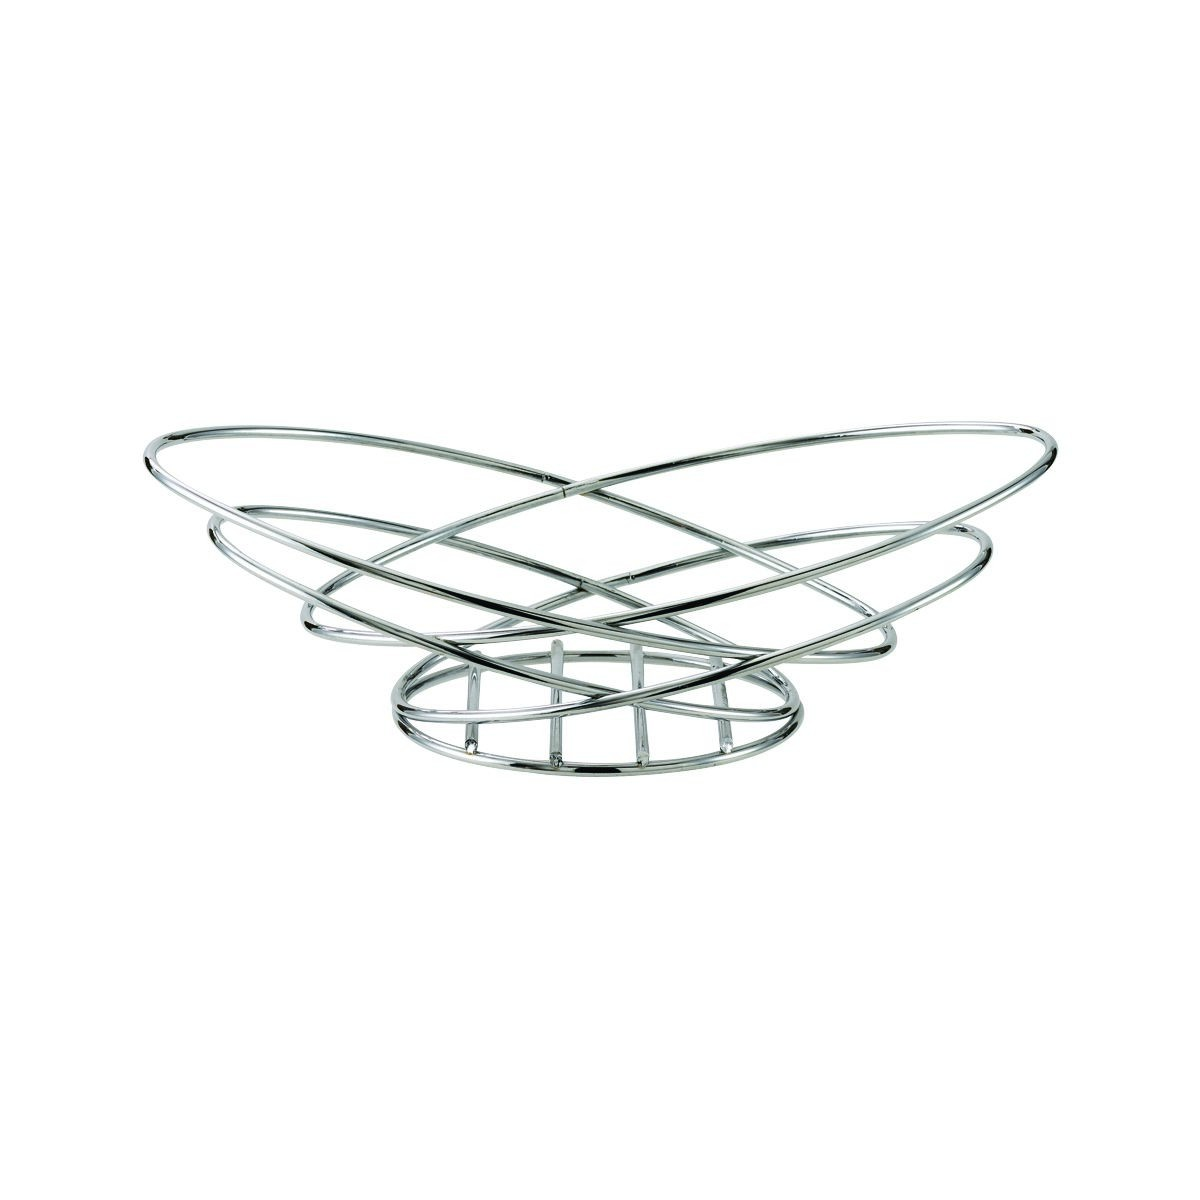 Service Ideas BKWI Polished Stainless Steel Oval Wire Basket